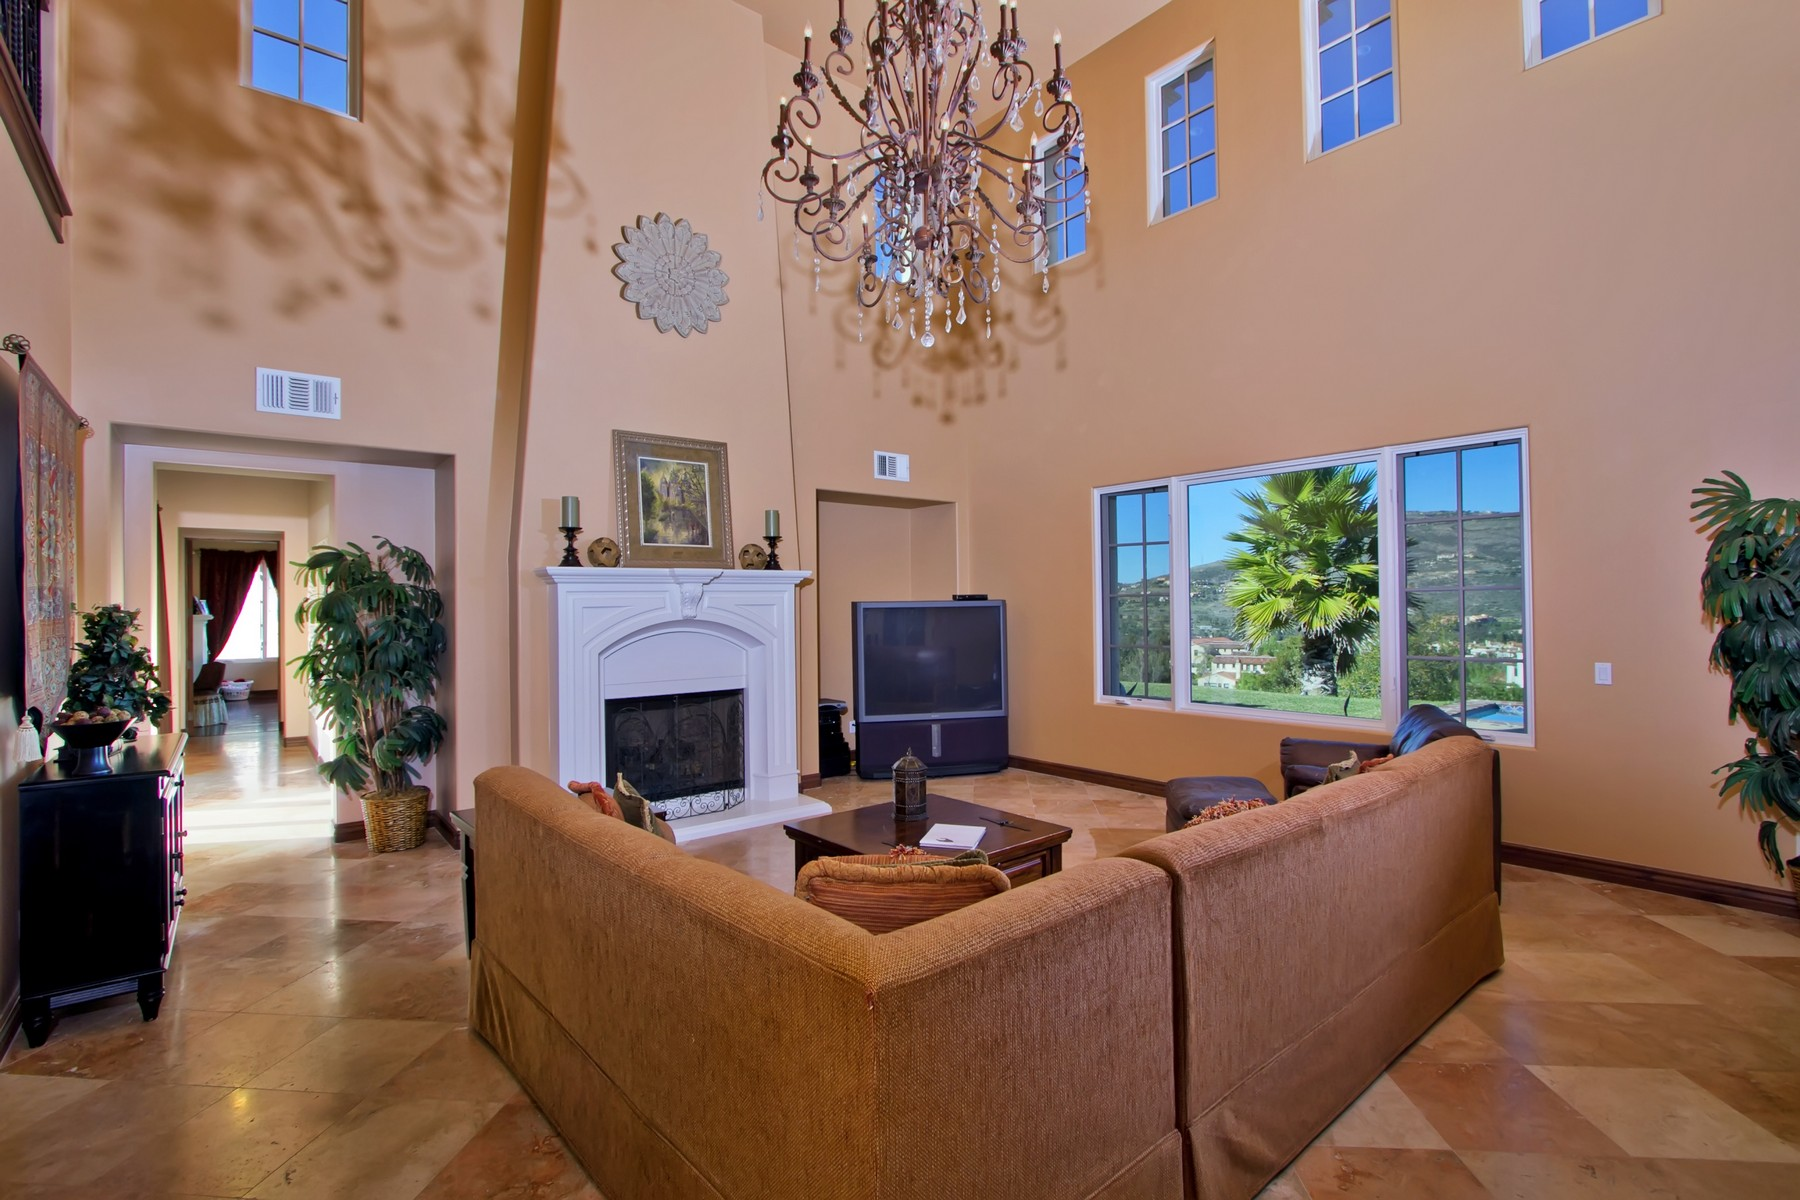 Additional photo for property listing at 8261 Top O the Morning 8261 Top O the Morning lease Rancho Santa Fe, California 92127 United States